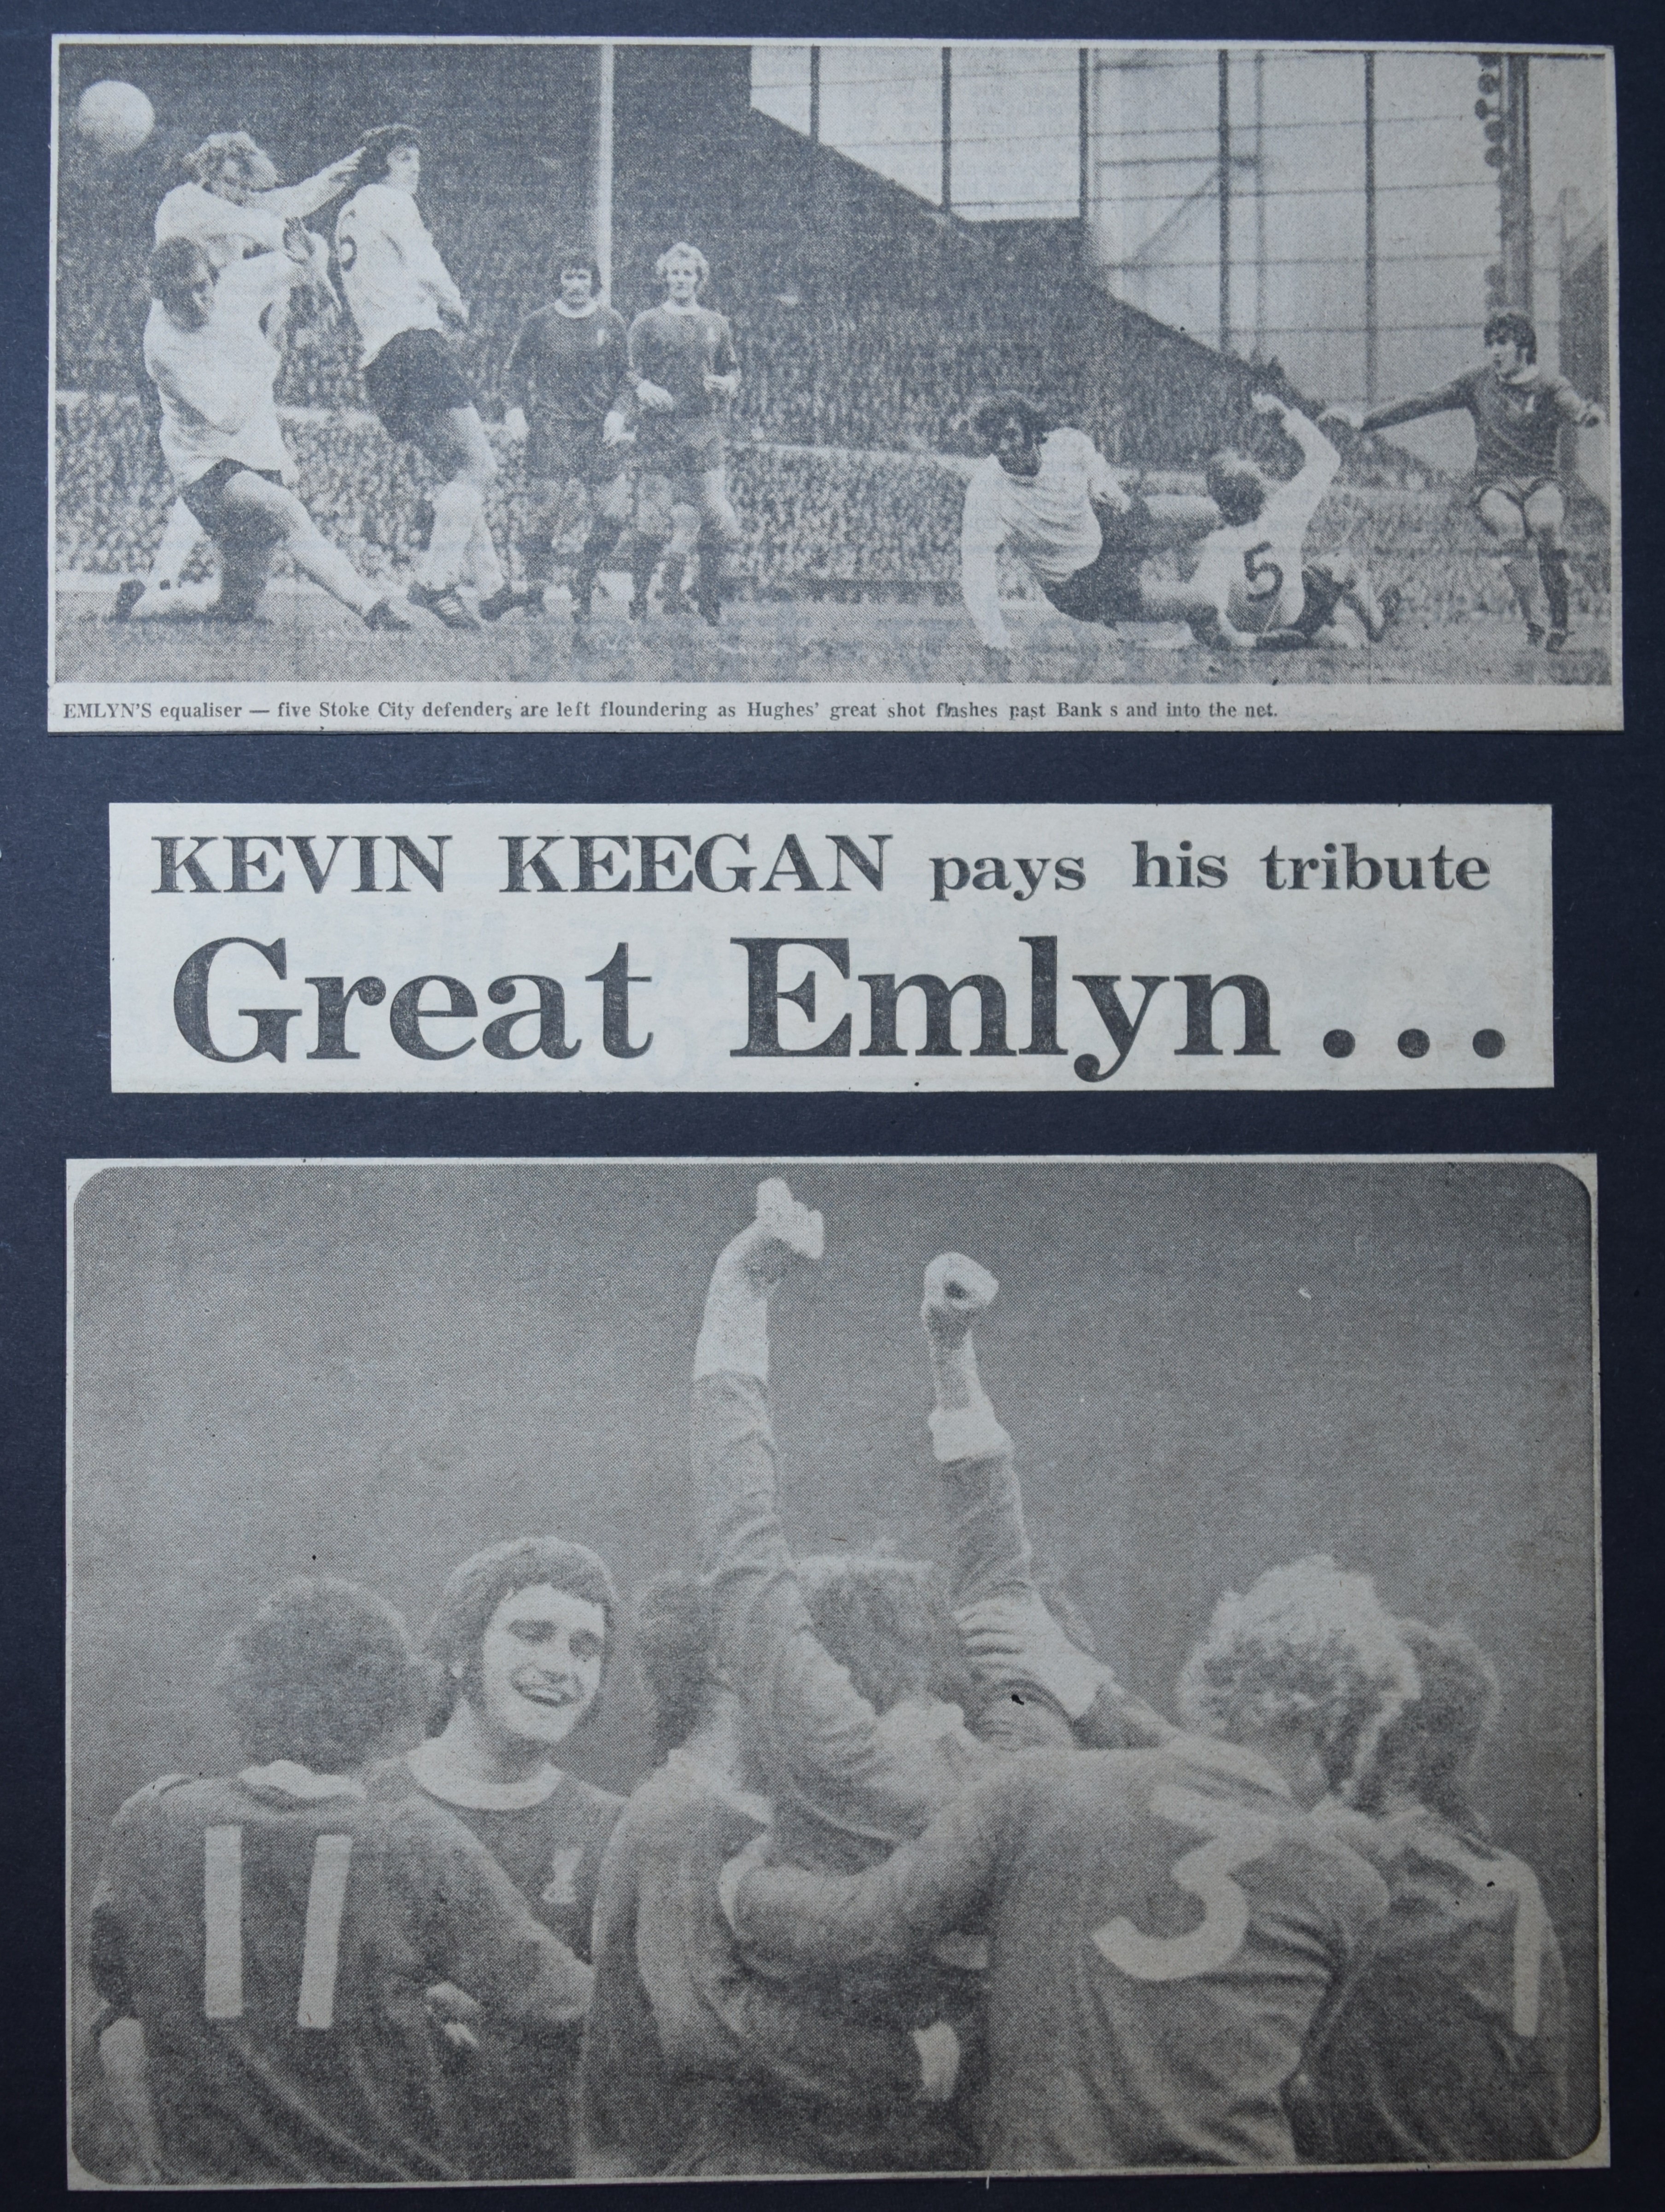 Keegan pays his tribute to great Emlyn - 21 October 1972